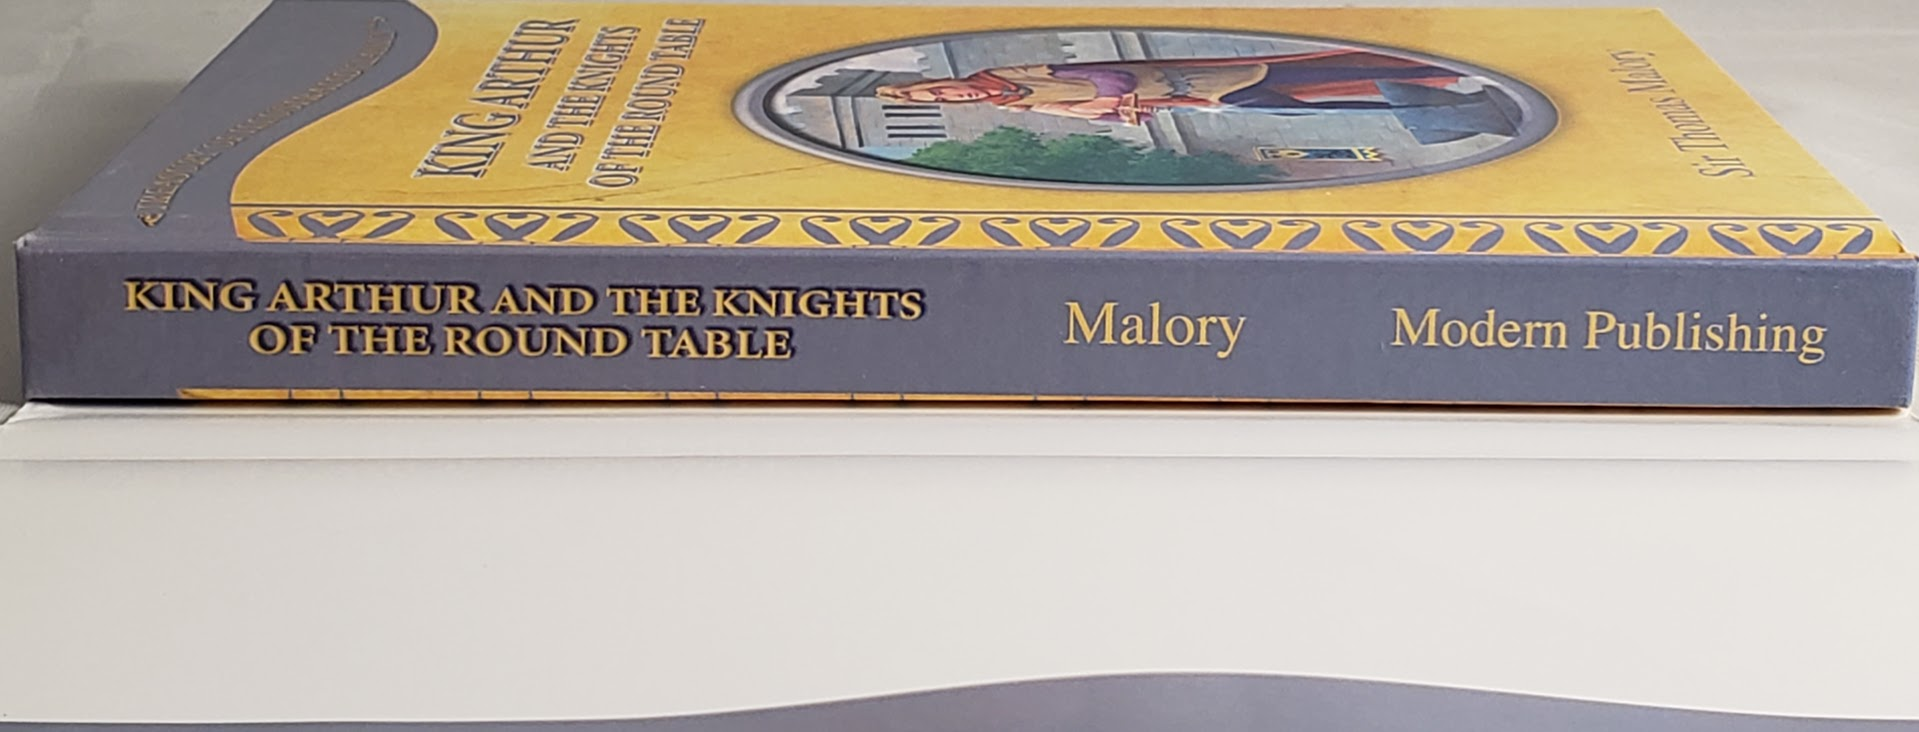 King Arthur and the Knights of the Round Table: Sir Thomas Malory